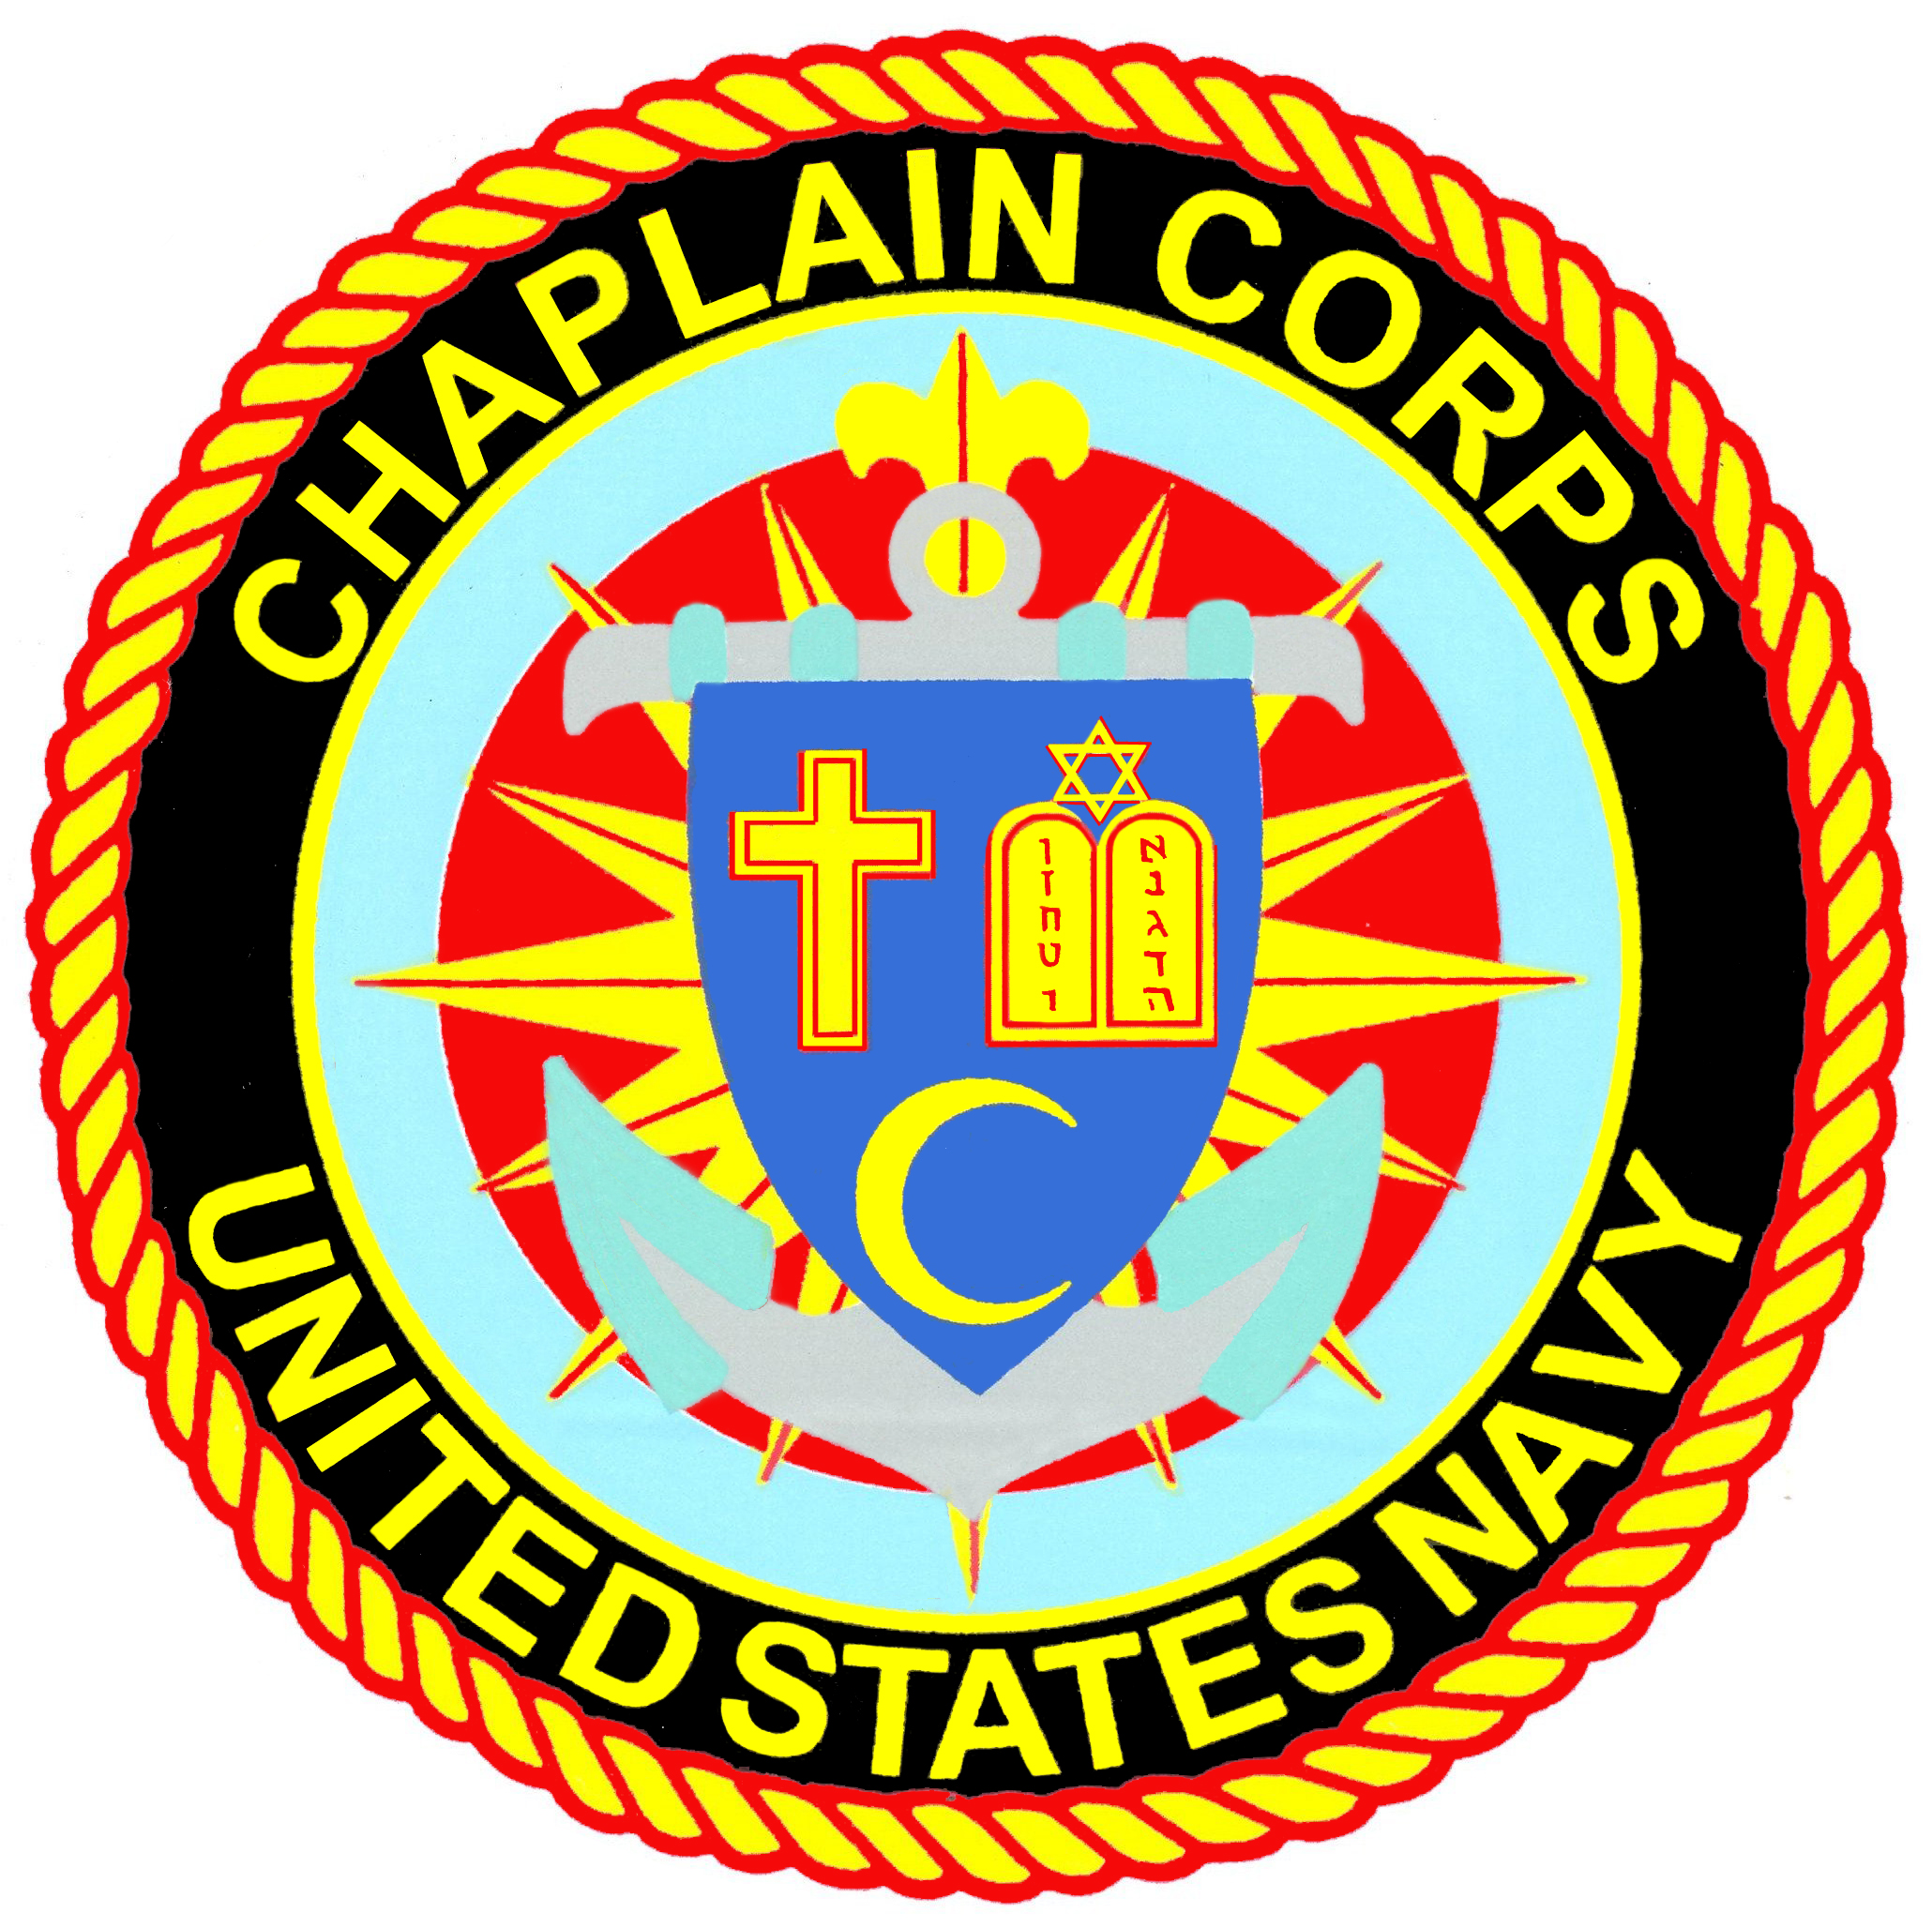 file us navy chaplain corps seal 1996 jpg wikimedia commons navy clip art free navy clip art square